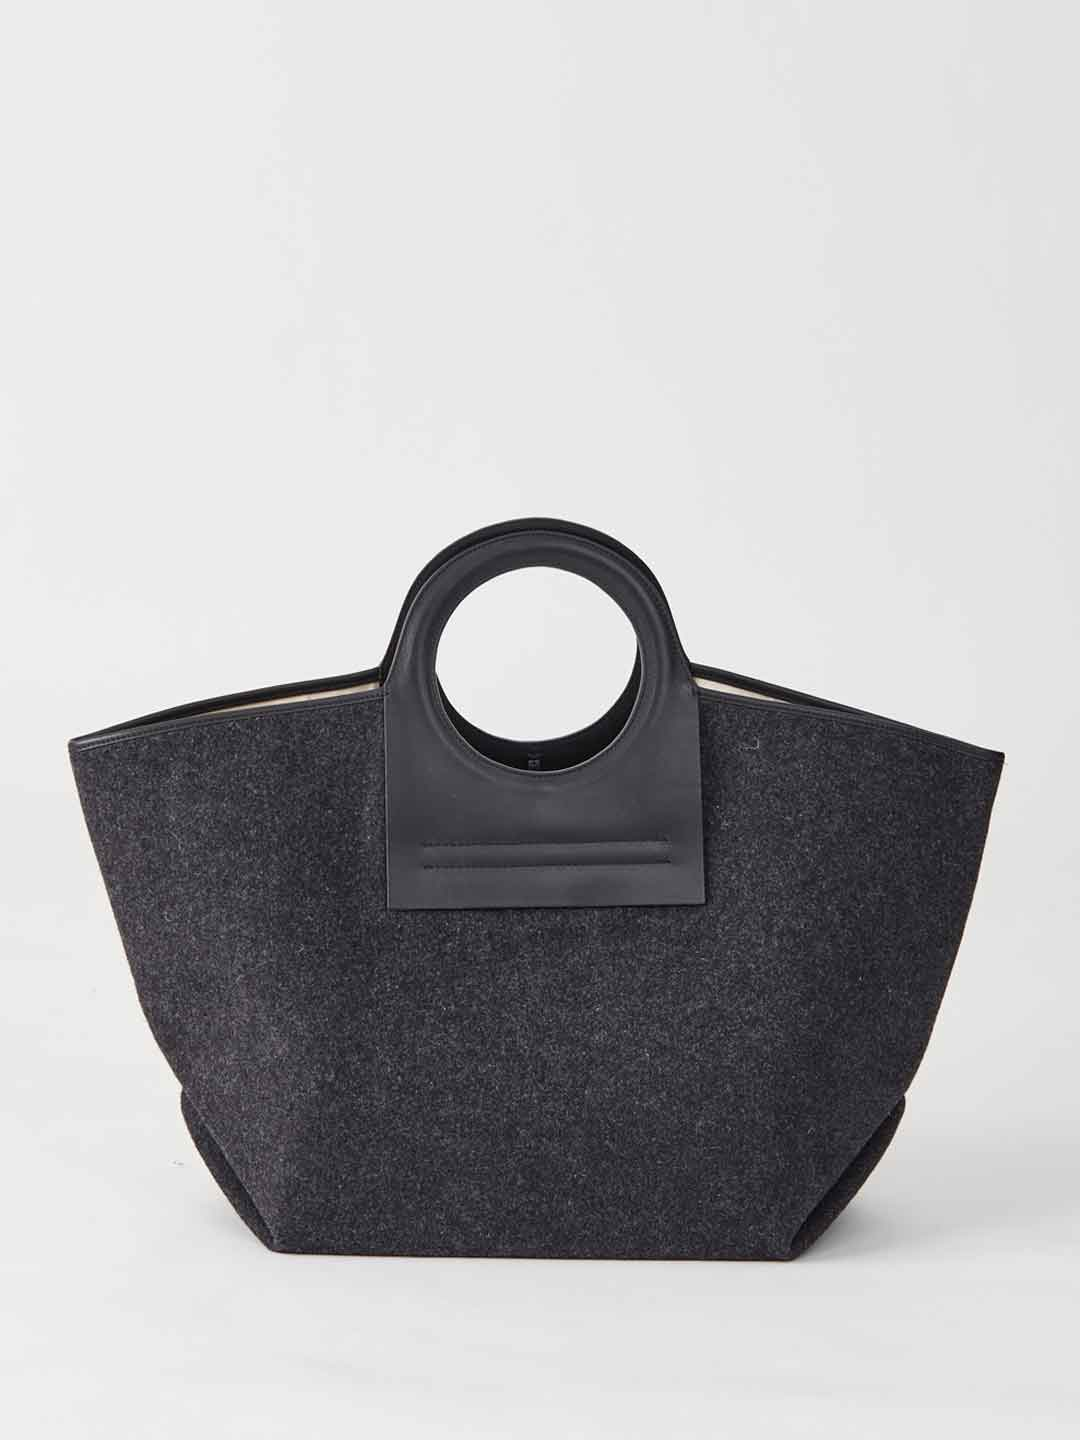 CALA Leather Canvas Tote - Charcoal Grey